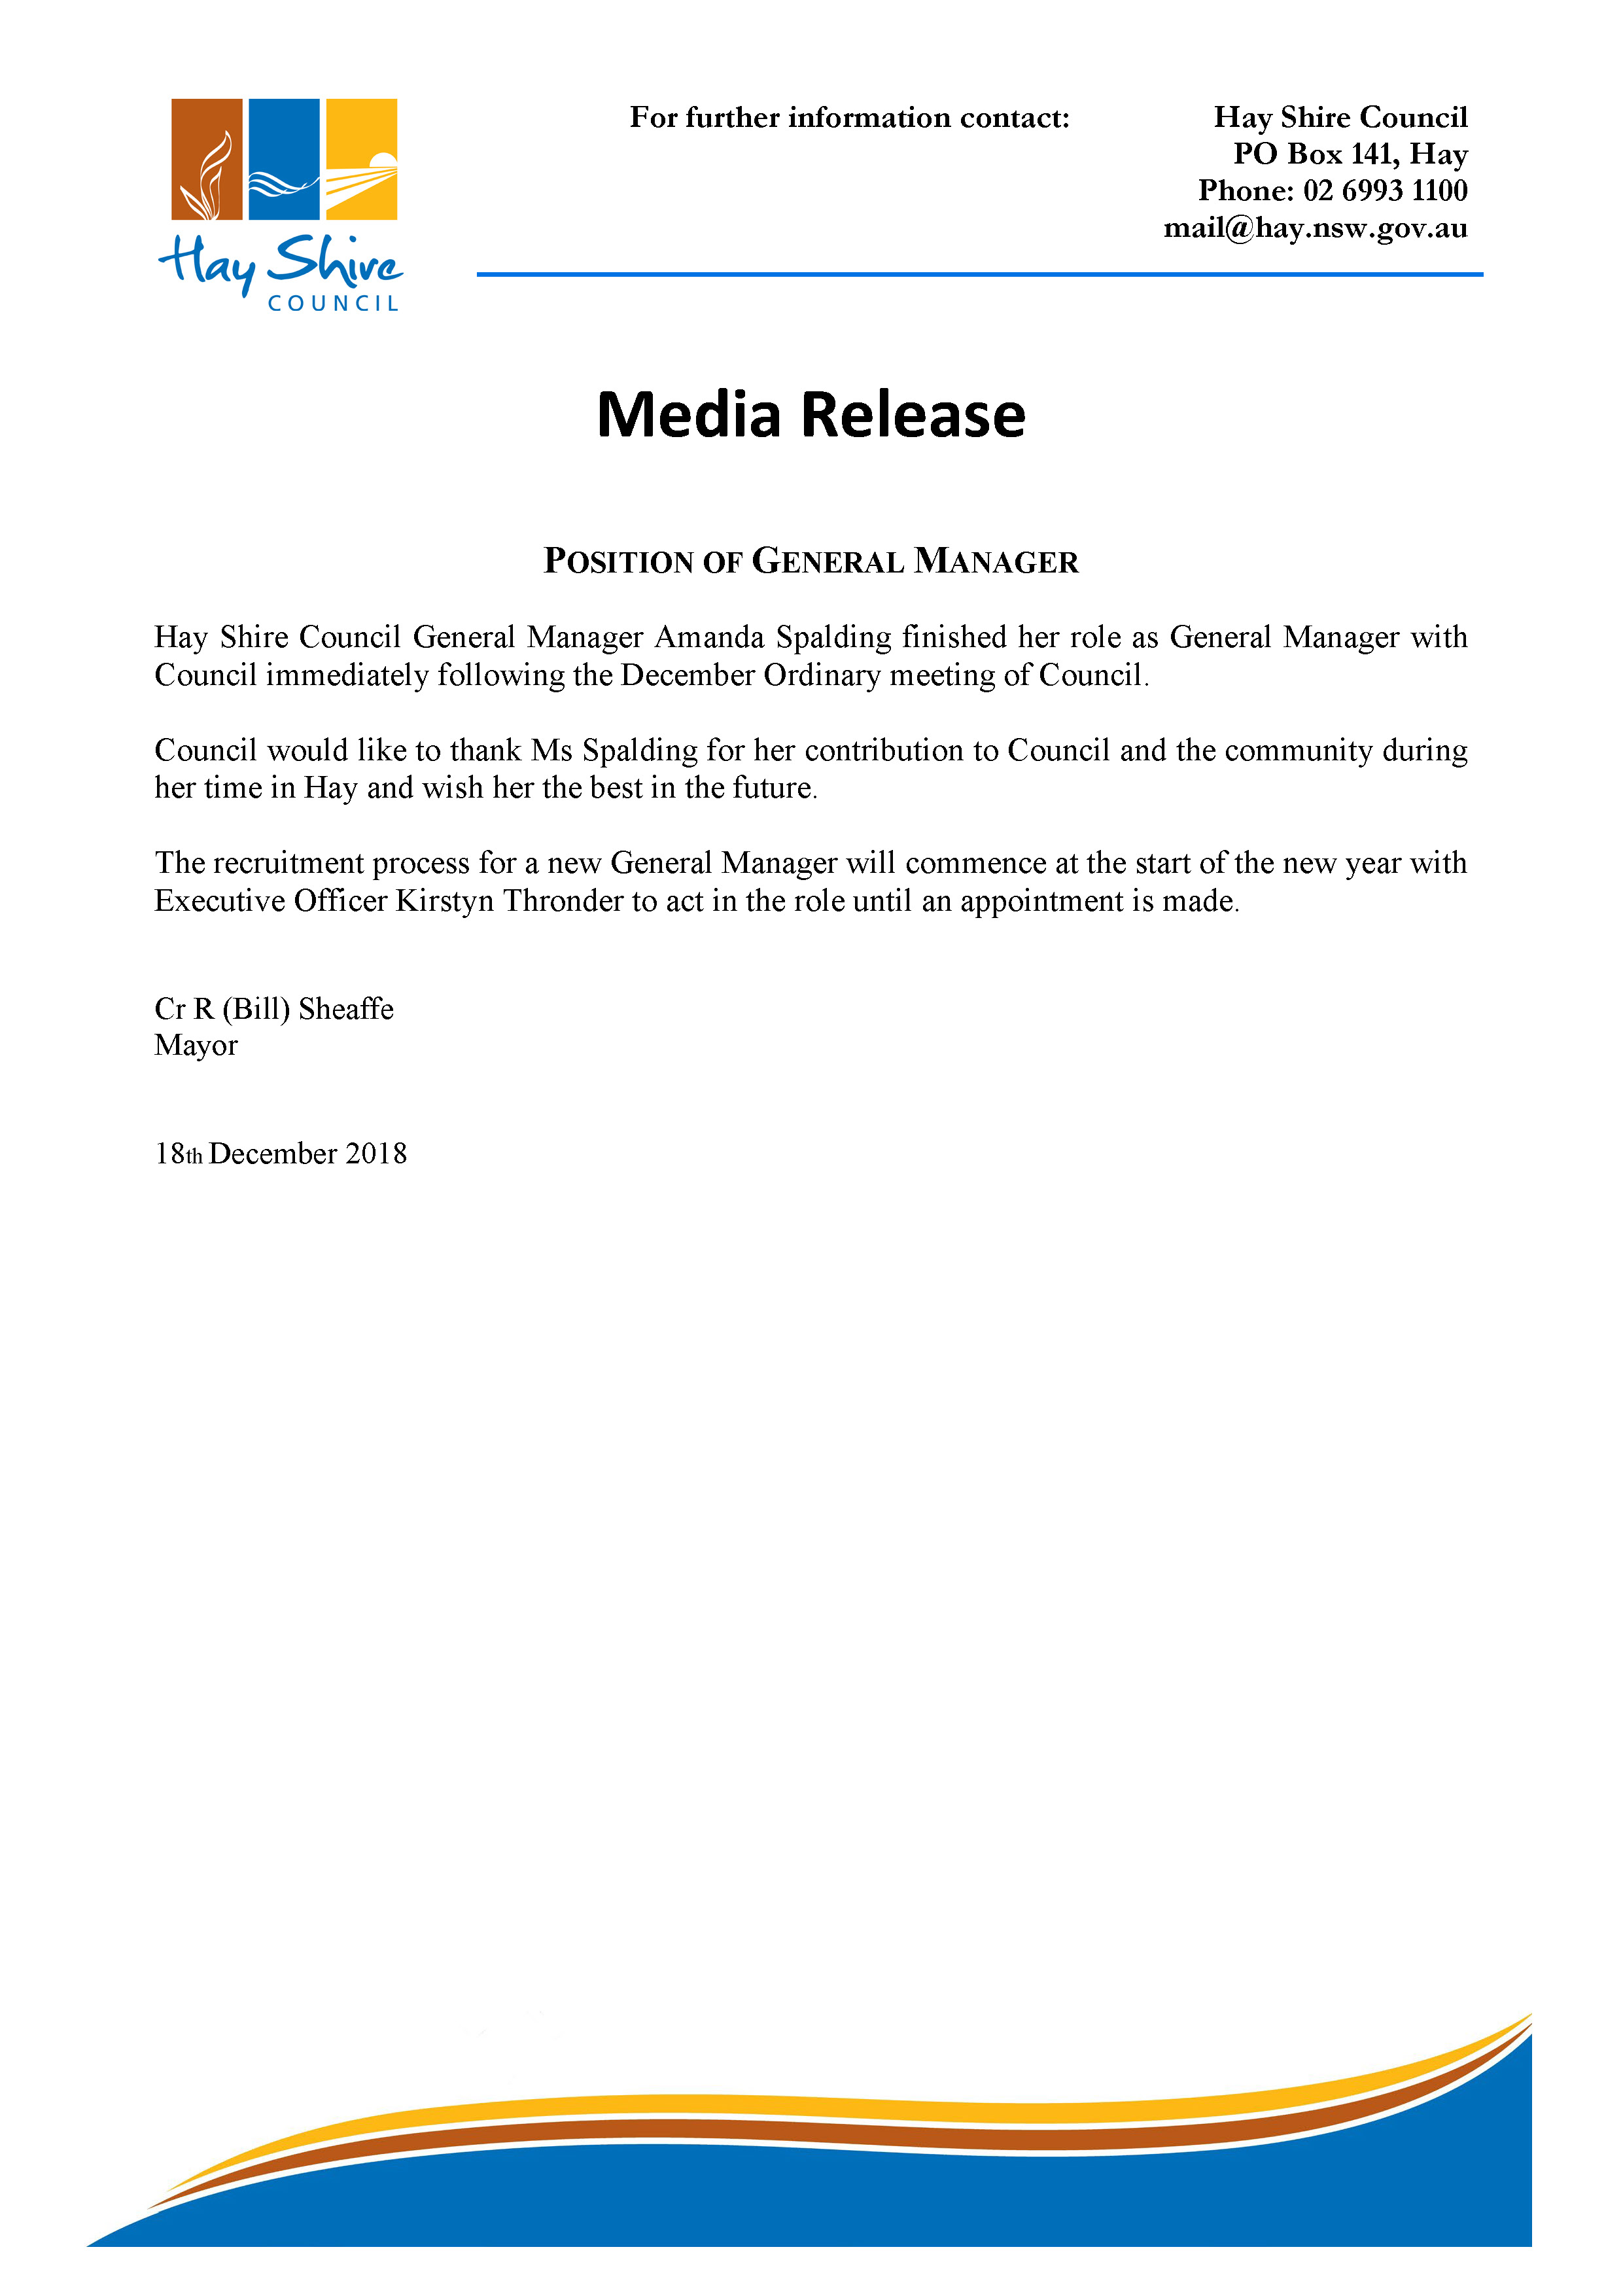 Media Release - Position of General Manager